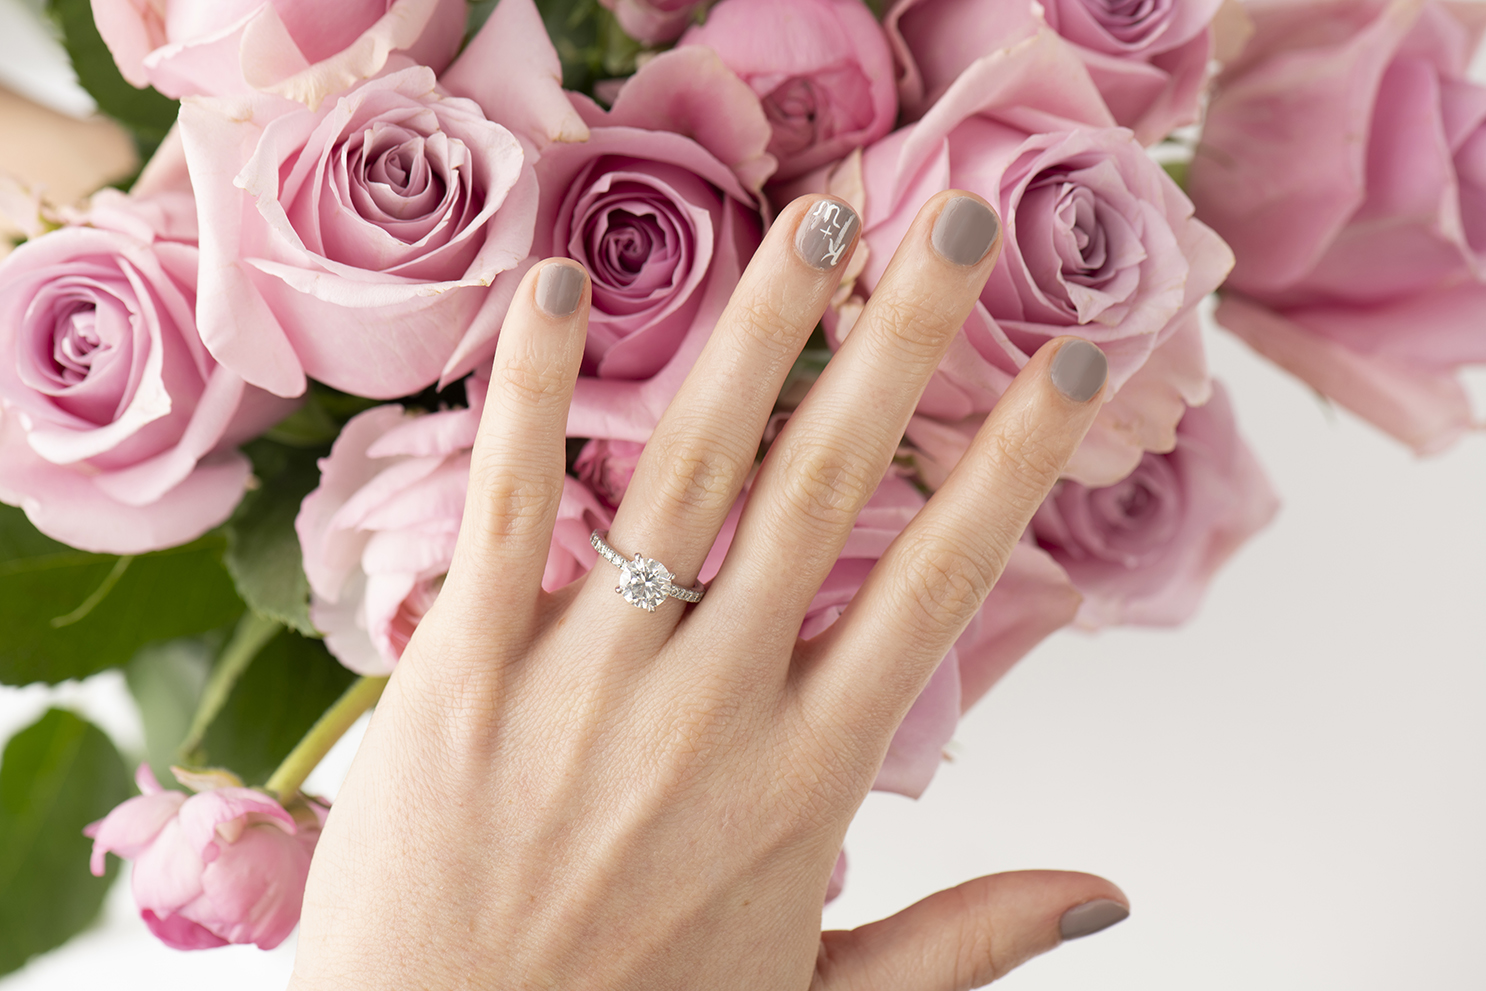 A woman's hand in front of pink roses.